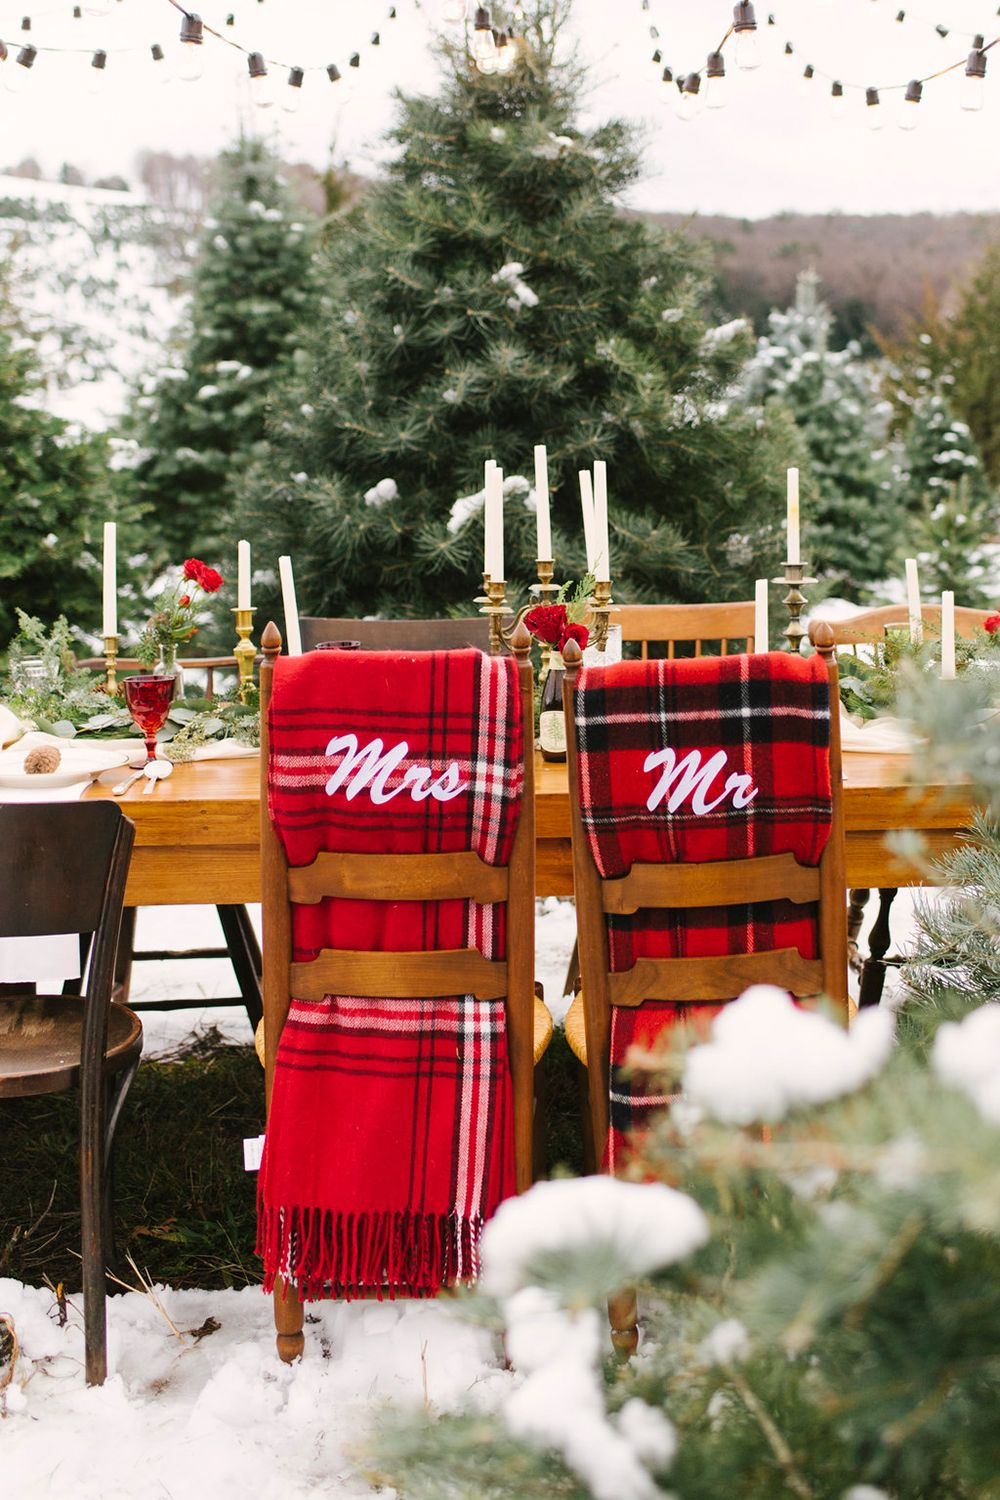 Christmas tree farm wedding inspiration with tradition pinterest christmas wedding ideas photo by alicia king photography httpruffledblogchristmas tree farm wedding inspiration with tradition junglespirit Image collections